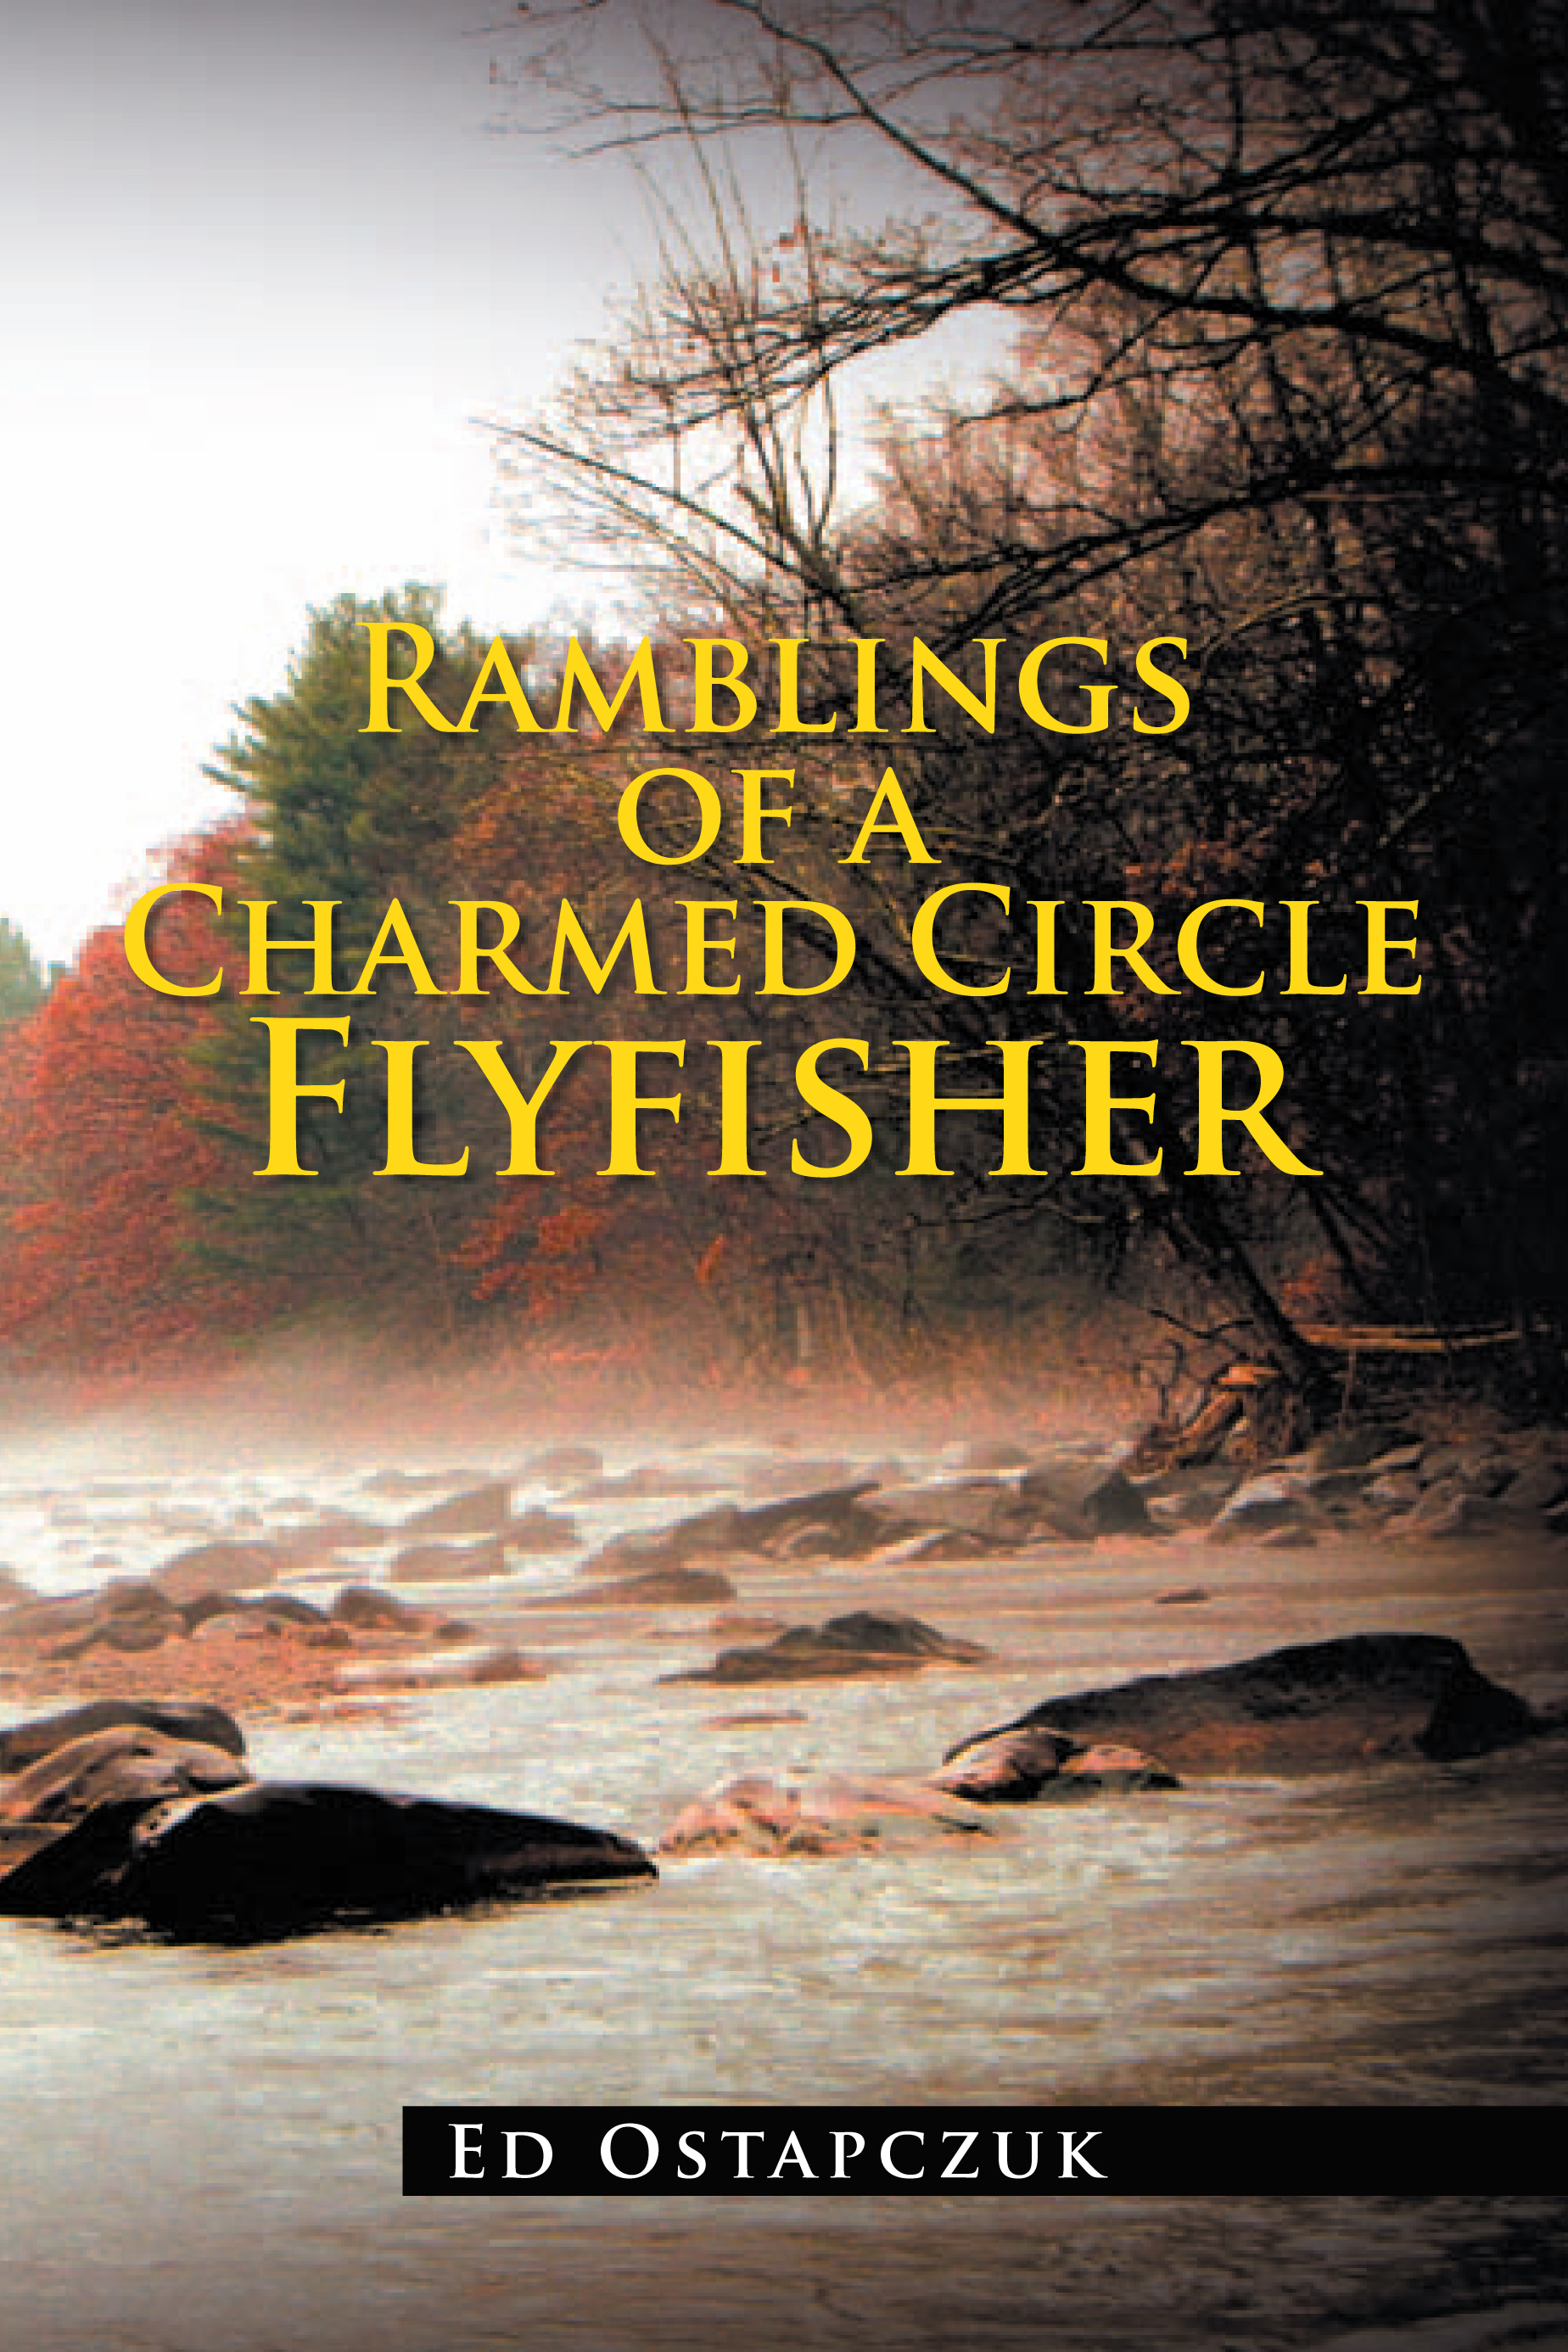 Ramblings of a Charmed Circle Flyfisher By: Ed Ostapczuk